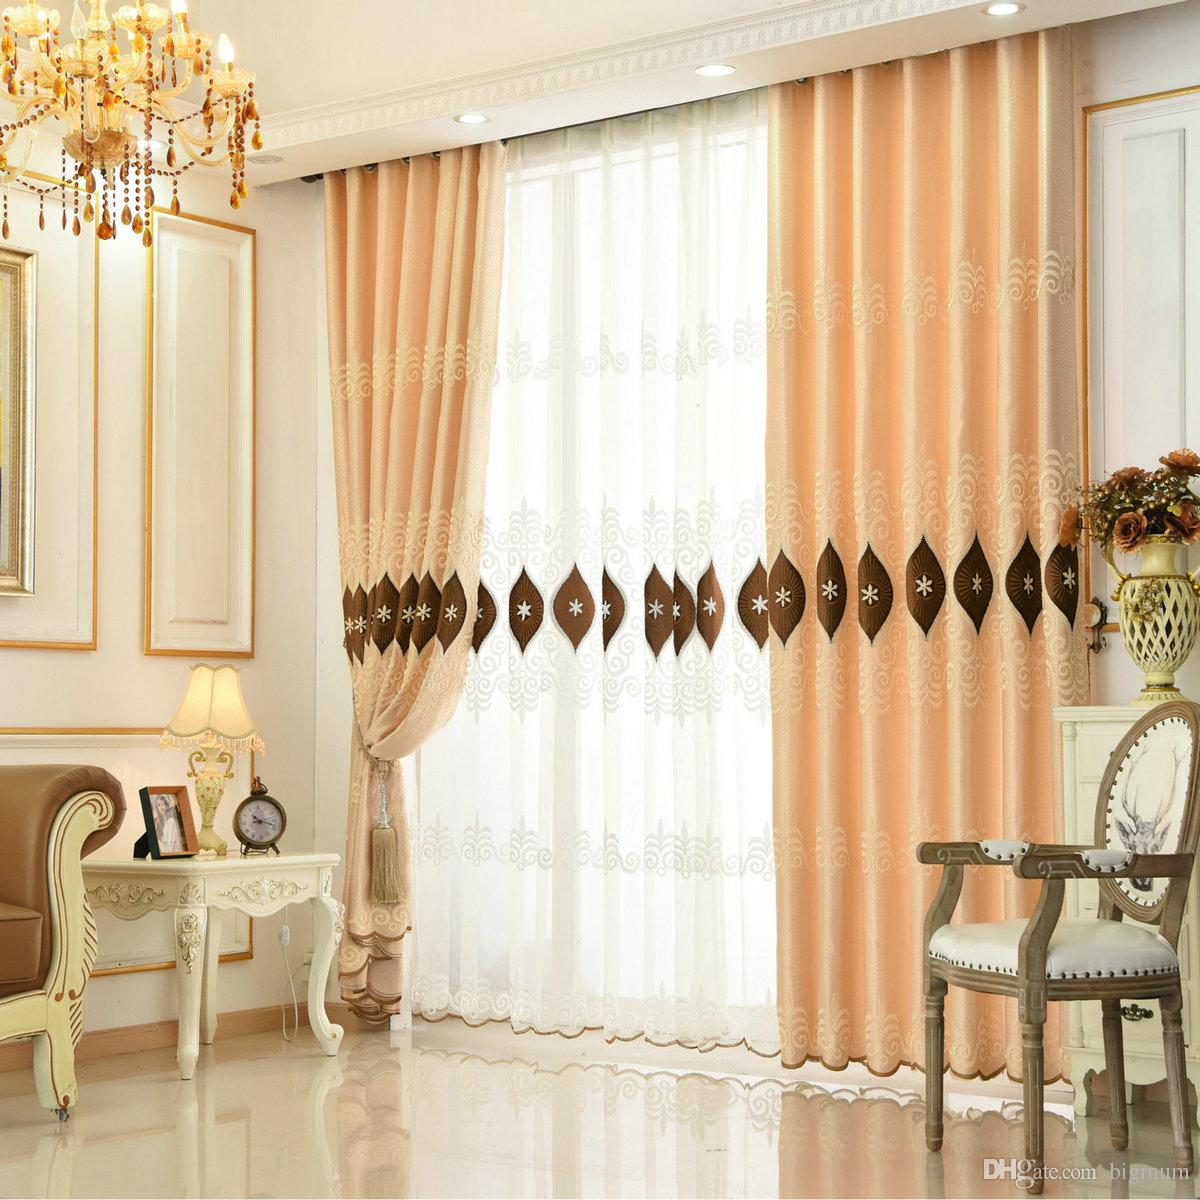 94 Inch Blackout Curtains High Quality Luxury Water Soluble Embroidery Blackout Curtain For Living Room Bedroom Leaves Stars Tulle For Window Treatment